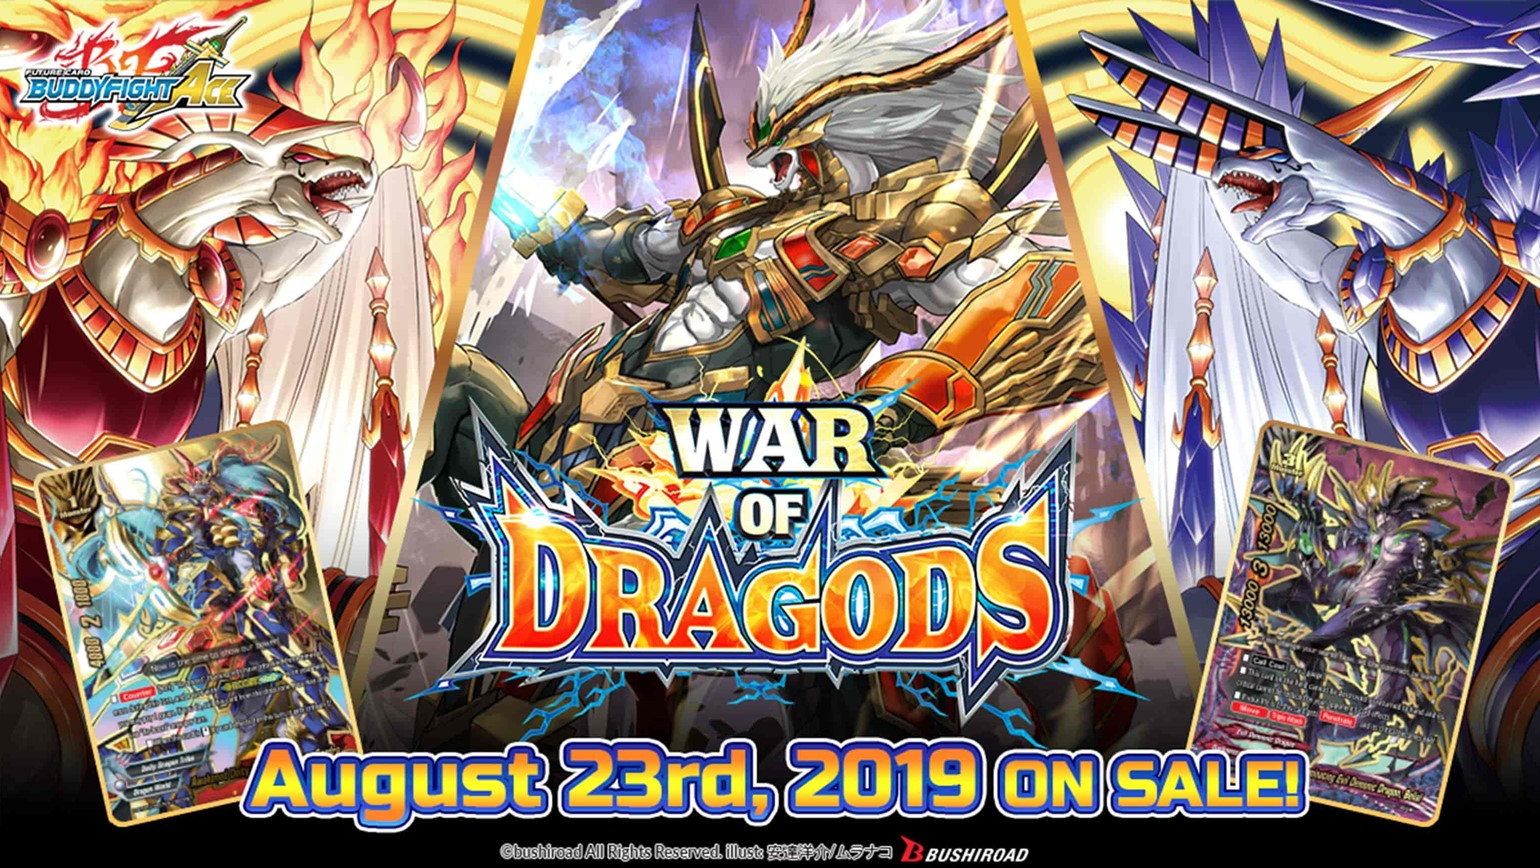 Future Card Buddyfight: Legend of Double Horus and War of Dragods Coming August 23rd